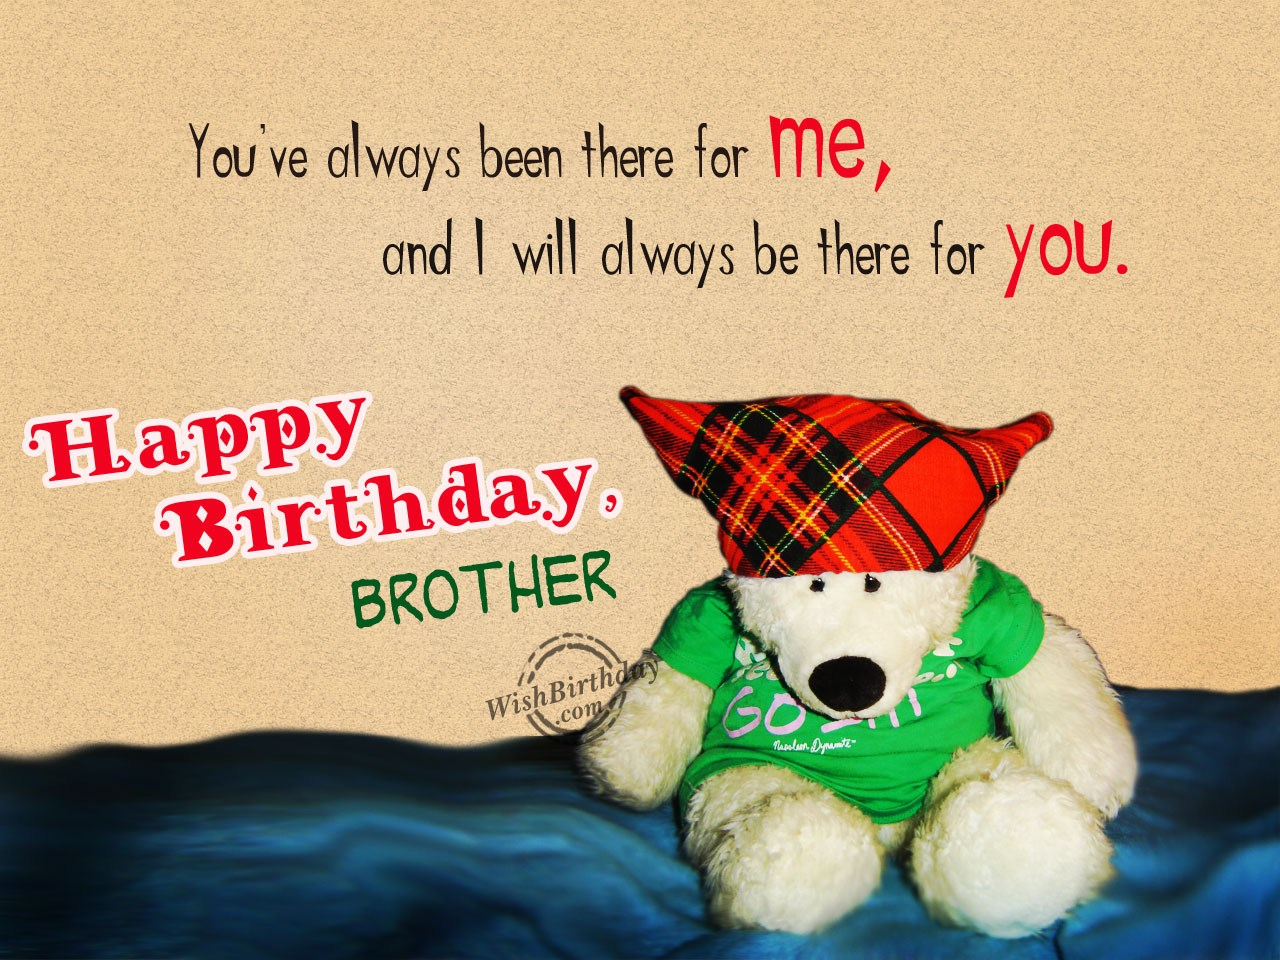 Birthday wishes for brother birthday images pictures happy birthday brother you have always been m4hsunfo Images